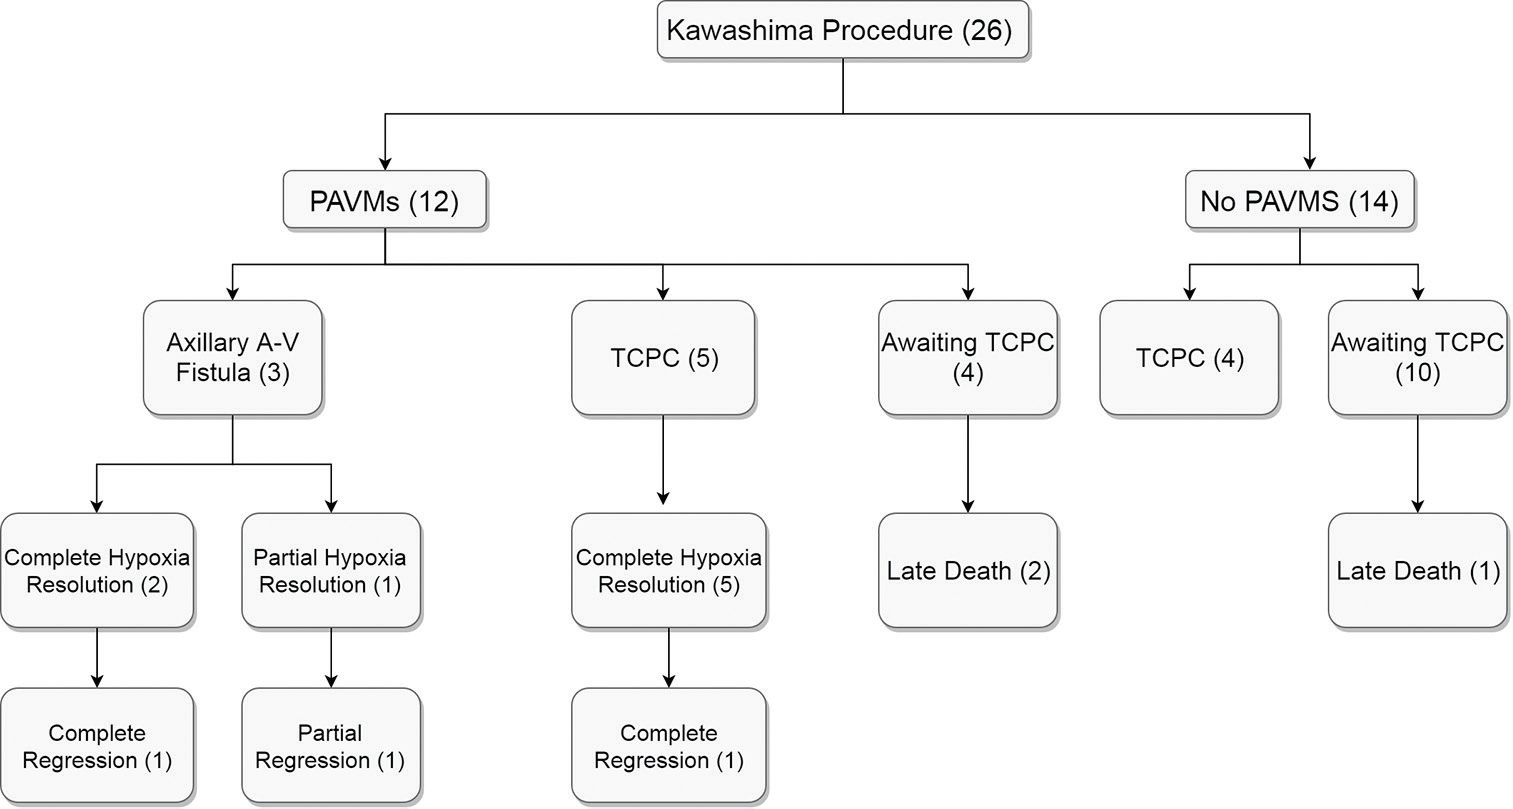 Figure 2: Outcome of patients after Kawashima procedure